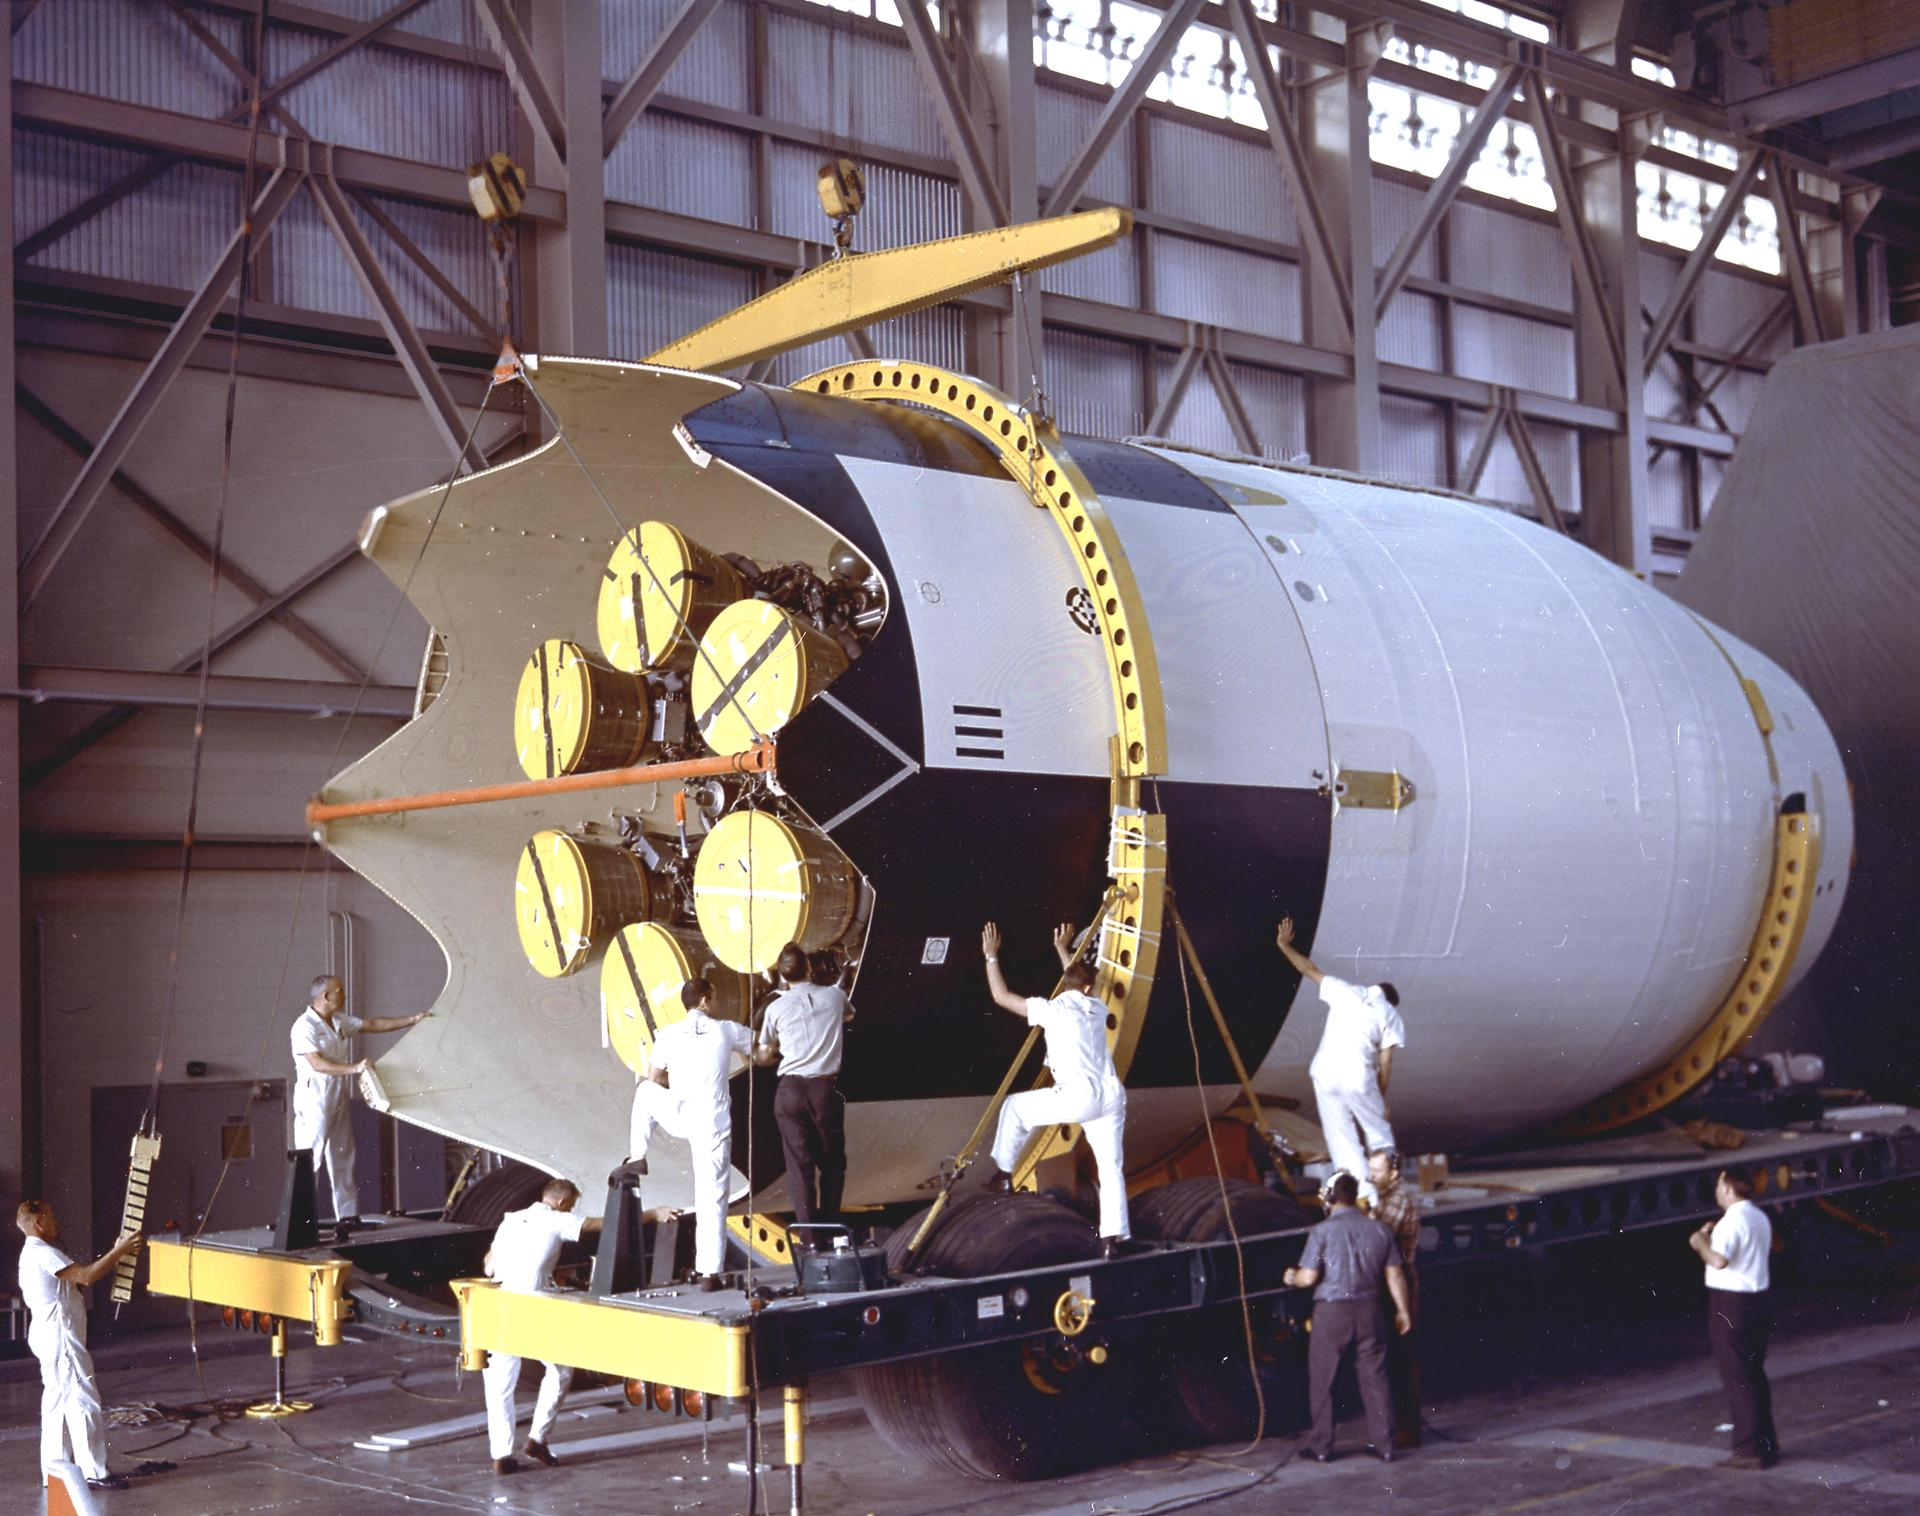 The S-IV stage for the SA-9 mission, undergoing weight and balance tests before launch. (Source: NASA)